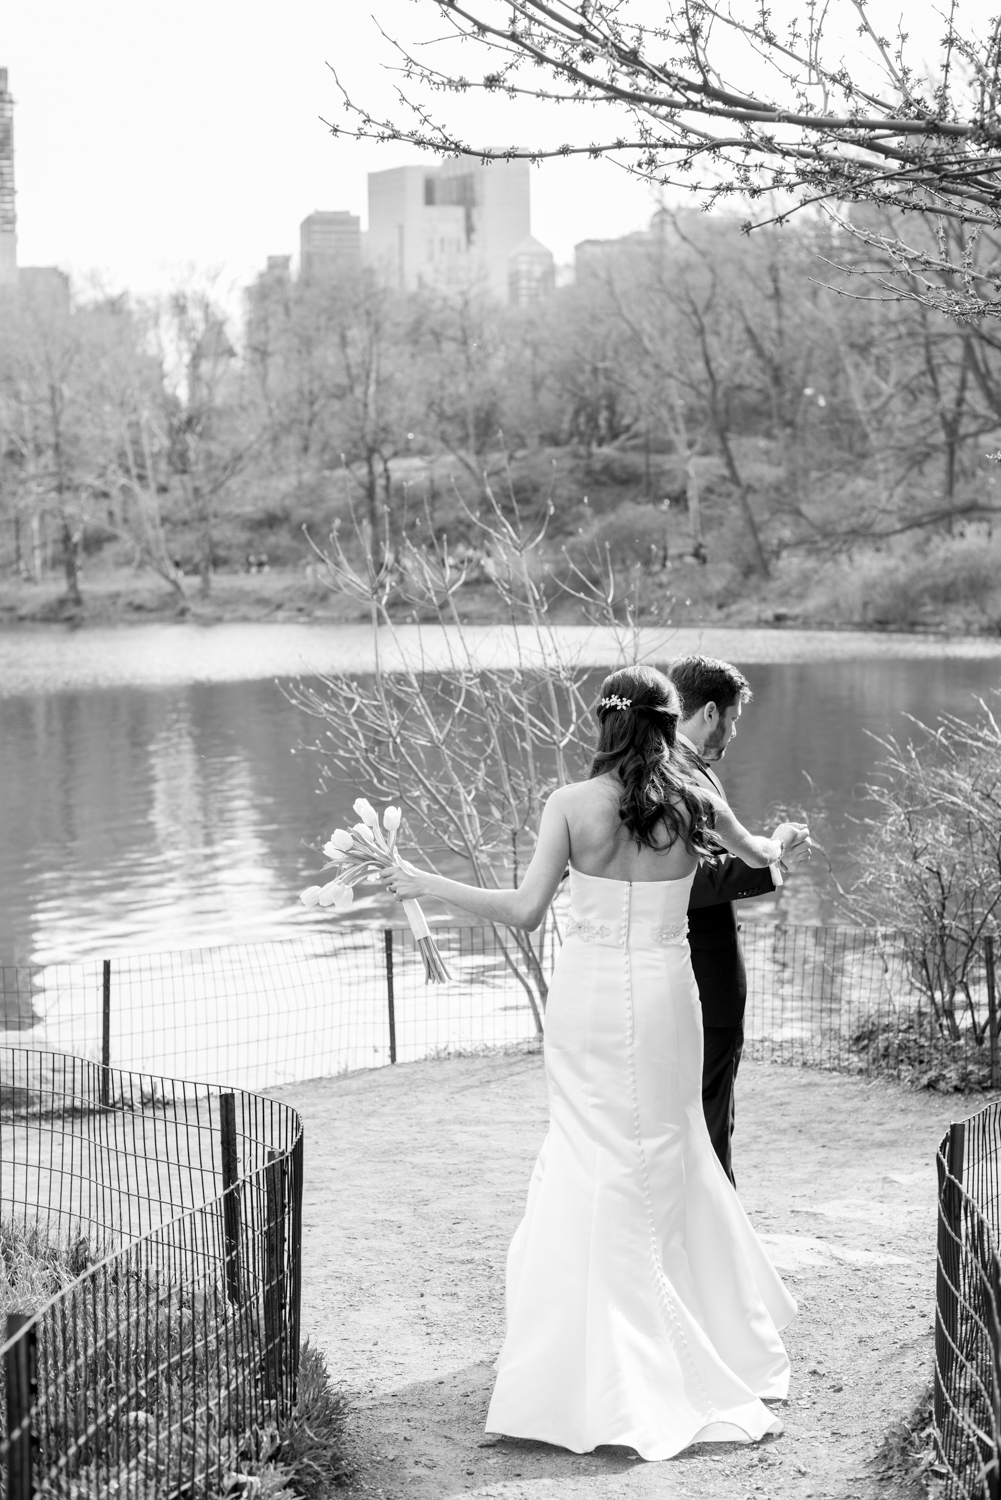 Anahi+David- Central Park Elopement- New York City- Olivia Christina Photo (222).JPG